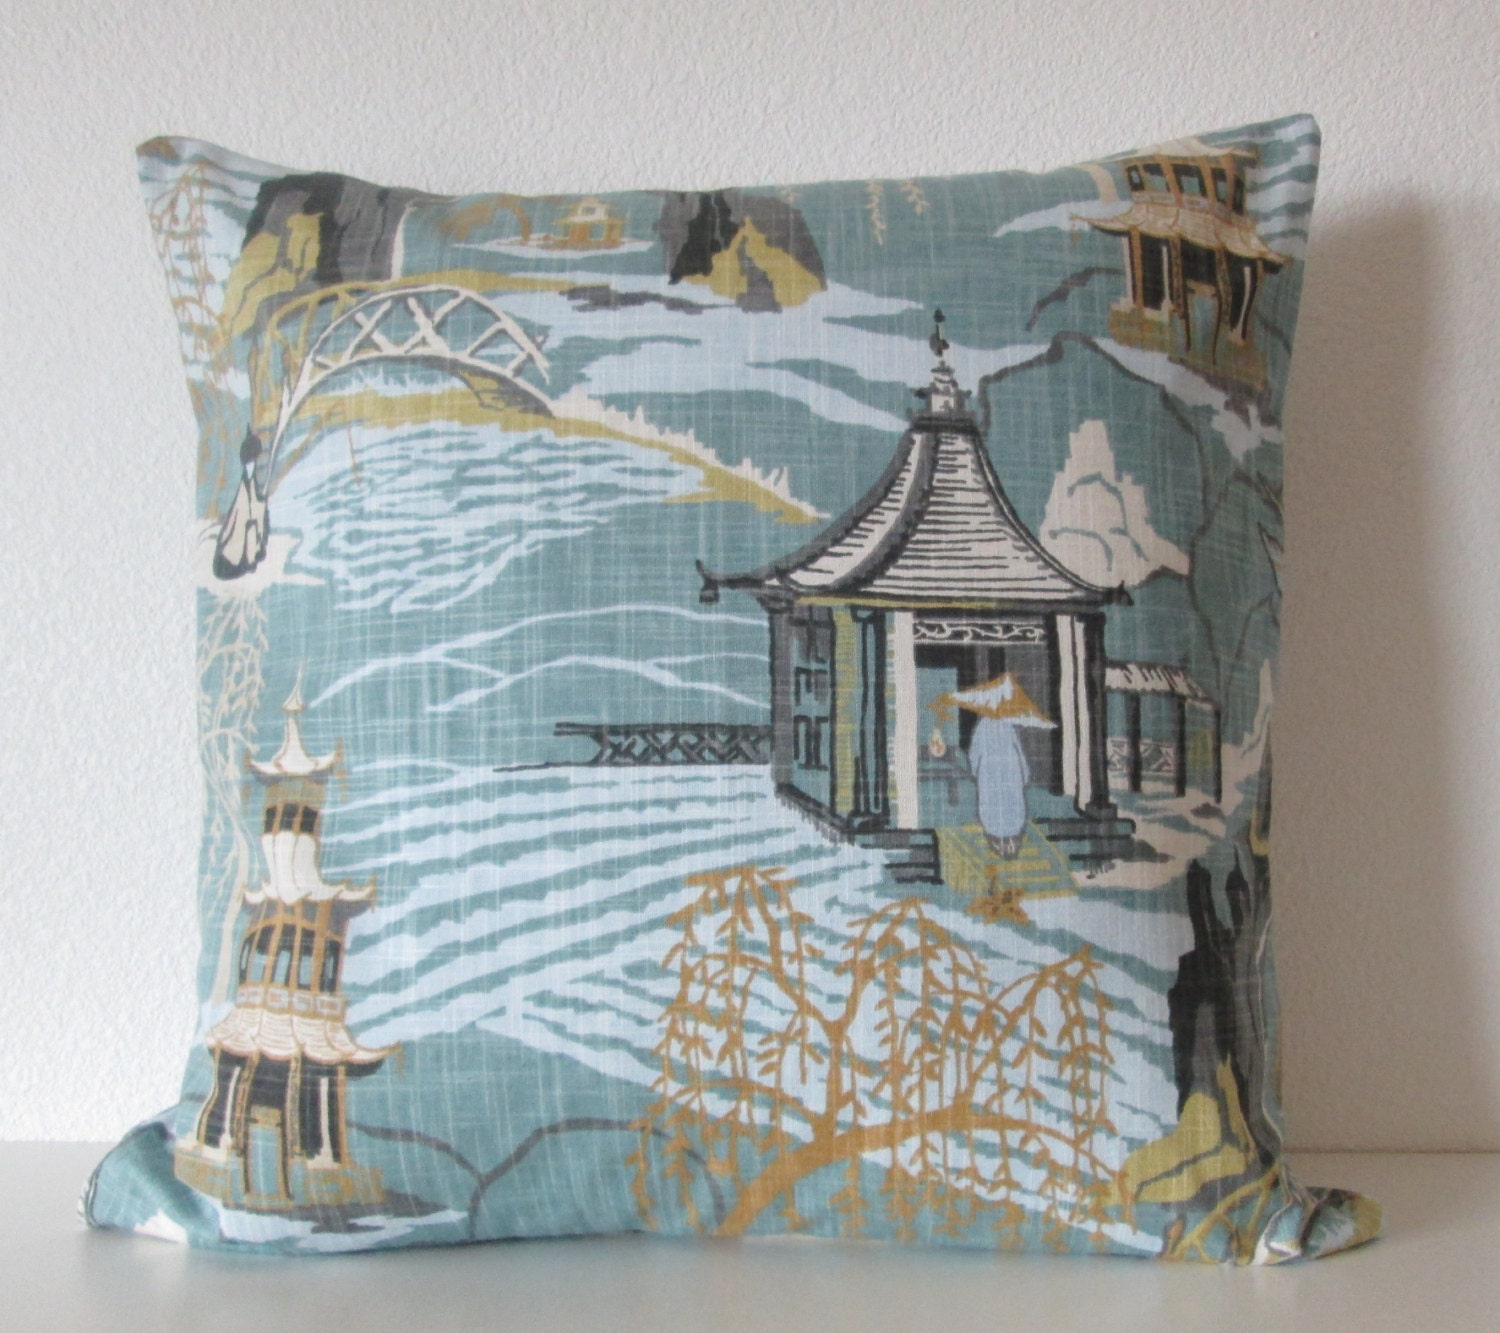 neo toile cove asian toile decorative pillow cover blue green. Black Bedroom Furniture Sets. Home Design Ideas